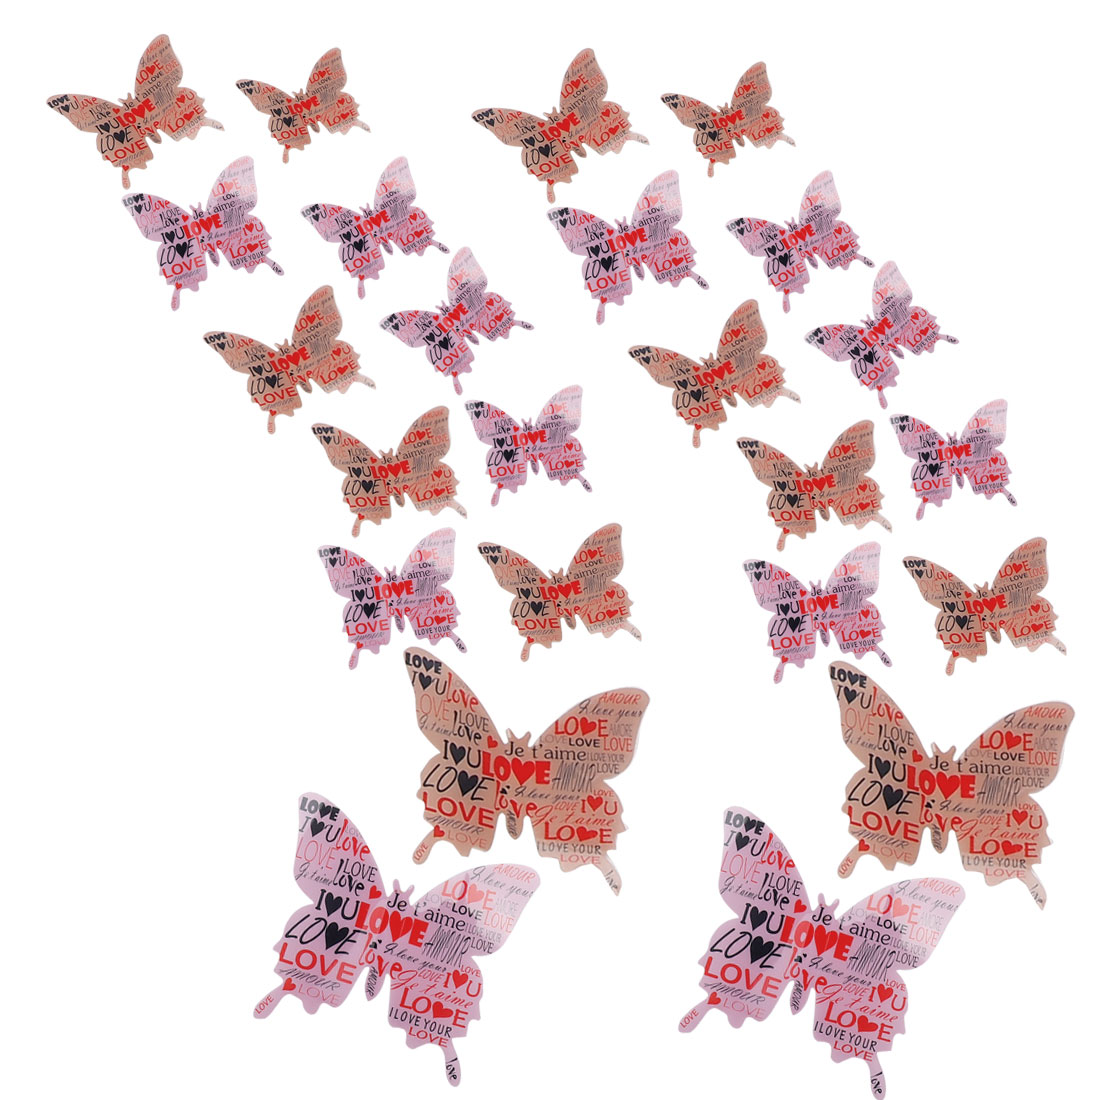 24pcs 3D Butterfly DIY Wall Sticker with Art for Room Decoration Pink Brown